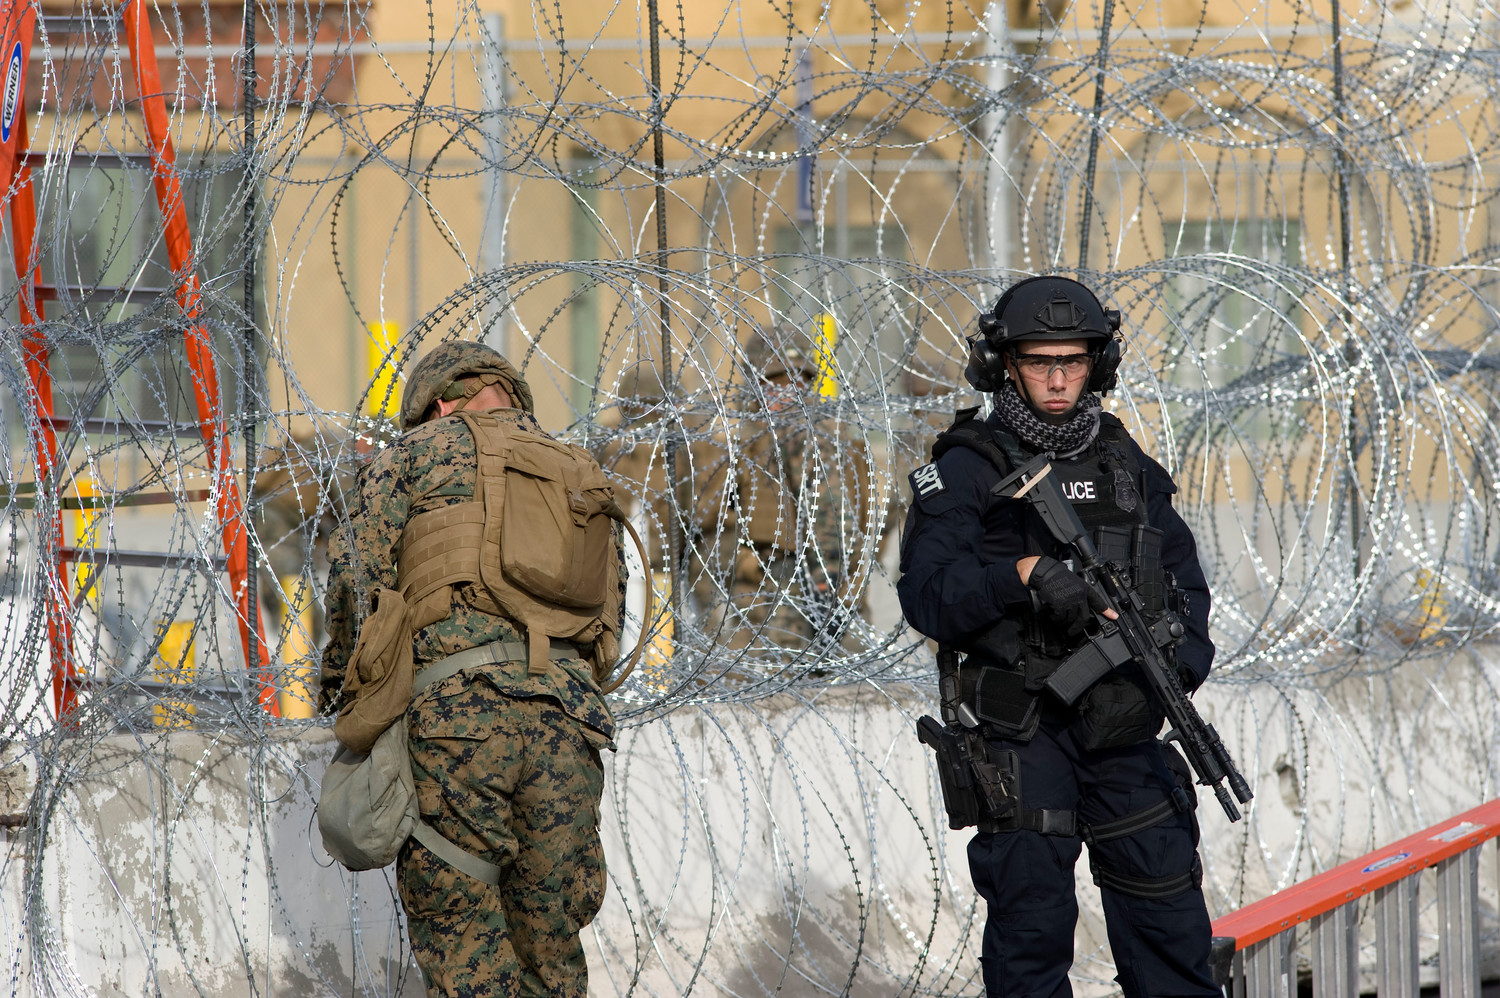 A U.S. Customs and Border Protection officer, right, stands next to a member of the U.S. military working with concertina wire during a show of force and exercise to secure the San Ysidro Port of Entry Nov. 22 in San Diego. Several hundred officers as well as military personnel were seen participating in the exercise, which had the border crossing closed for about 30 minutes. The show of force and exercise was in response to the presence of a large caravan of mainly Honduran migrants that recently arrived in neighboring Tijuana, Mexico.